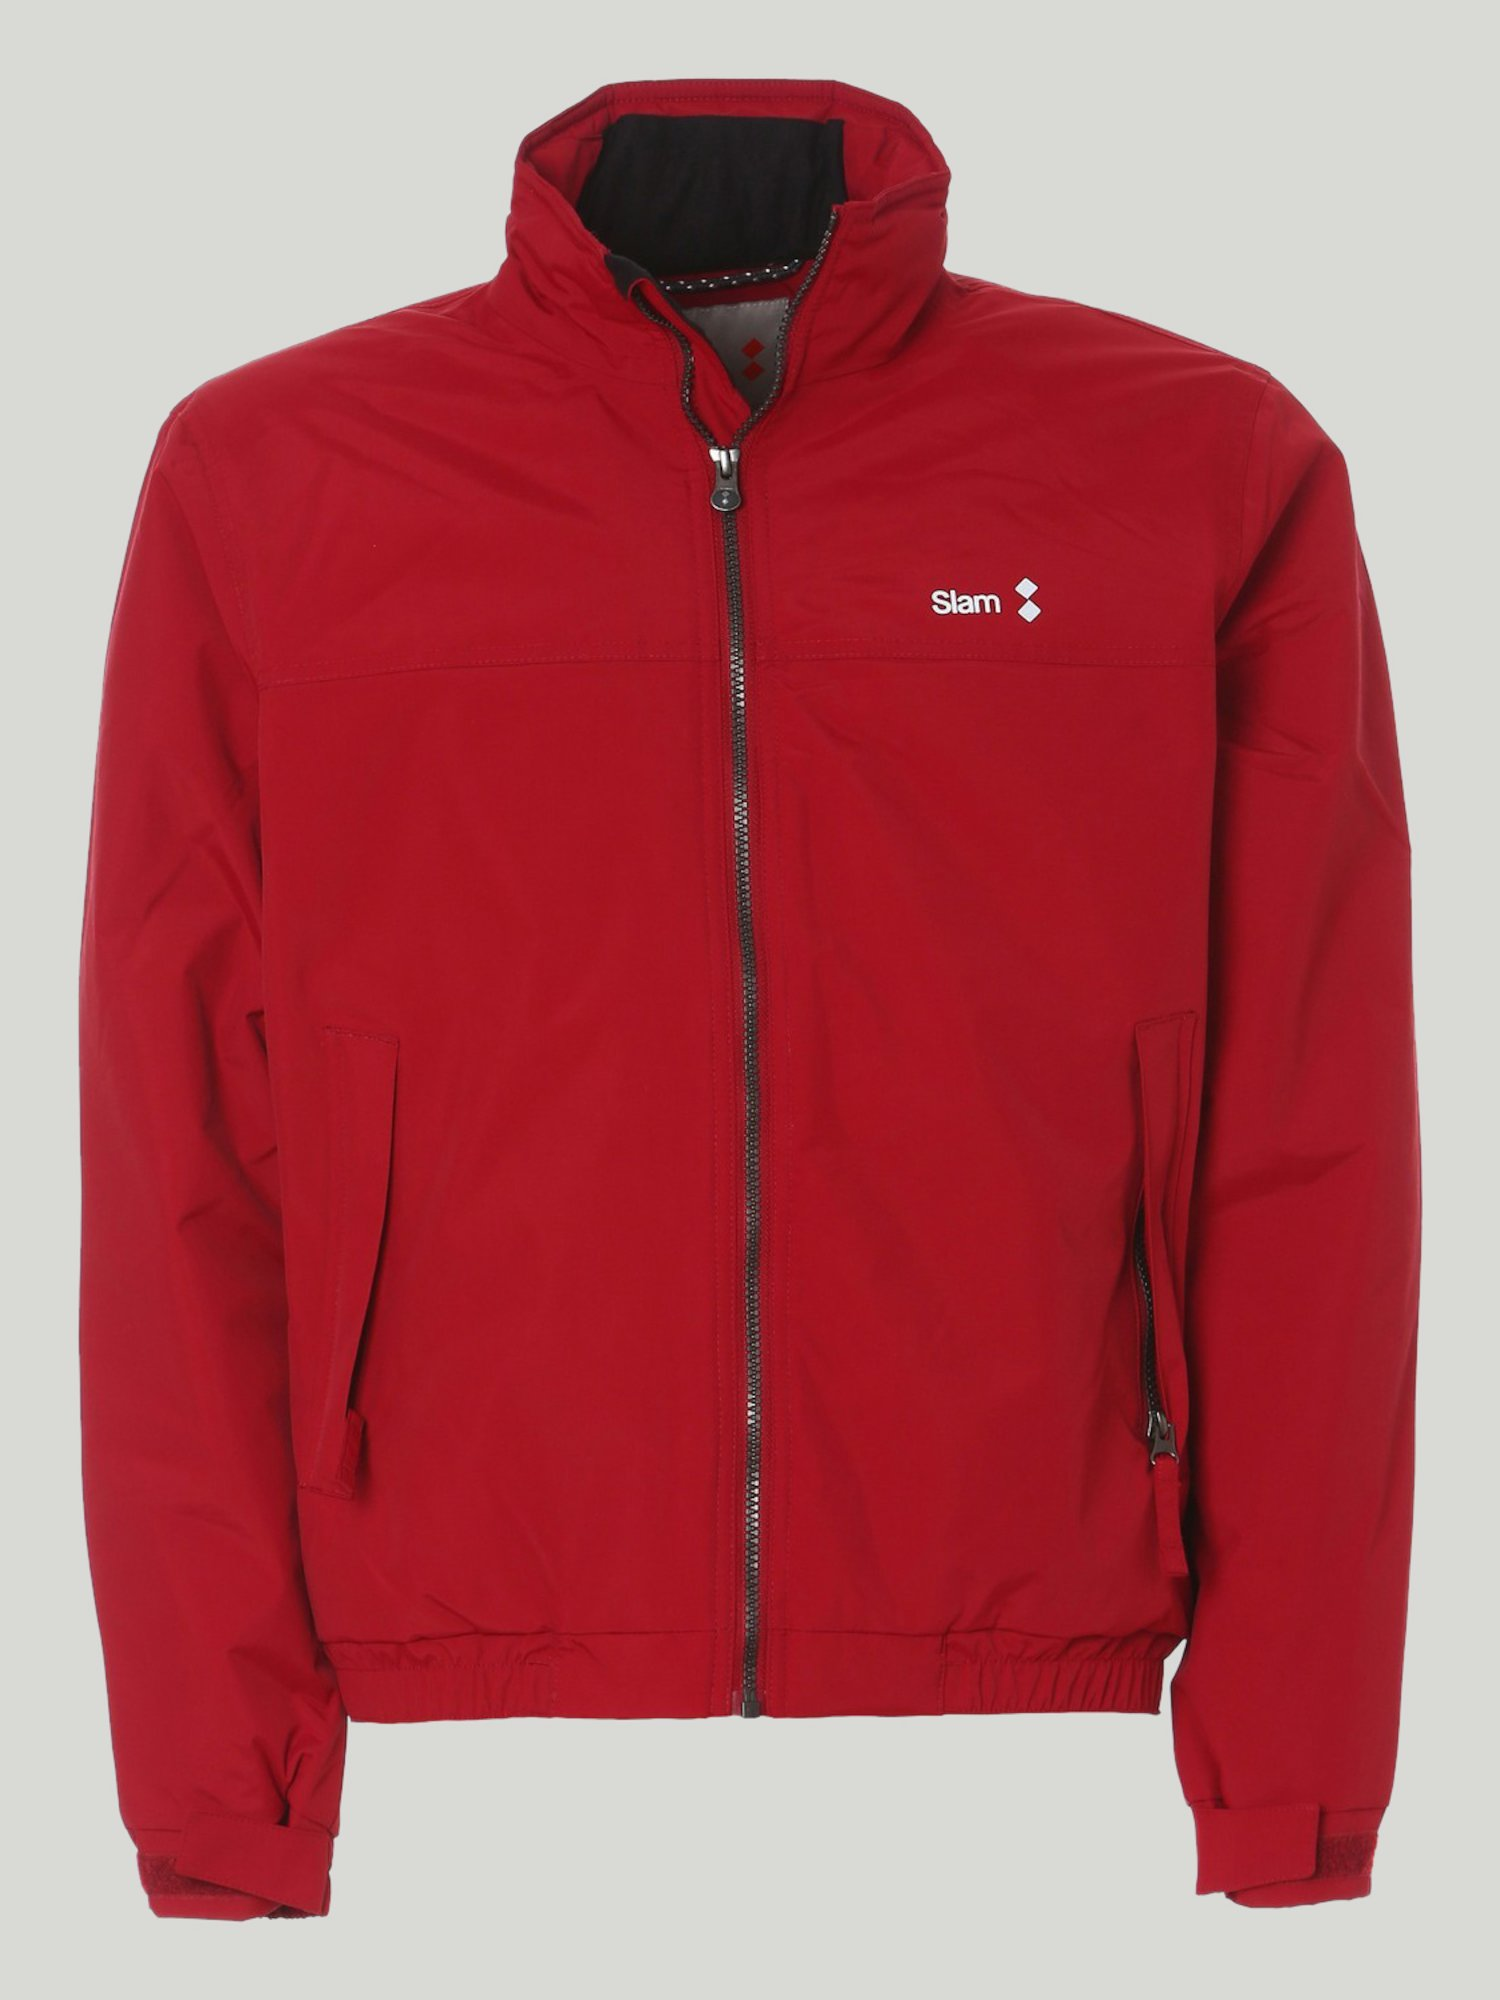 JACKET SABAYA WINTER - Breton Red